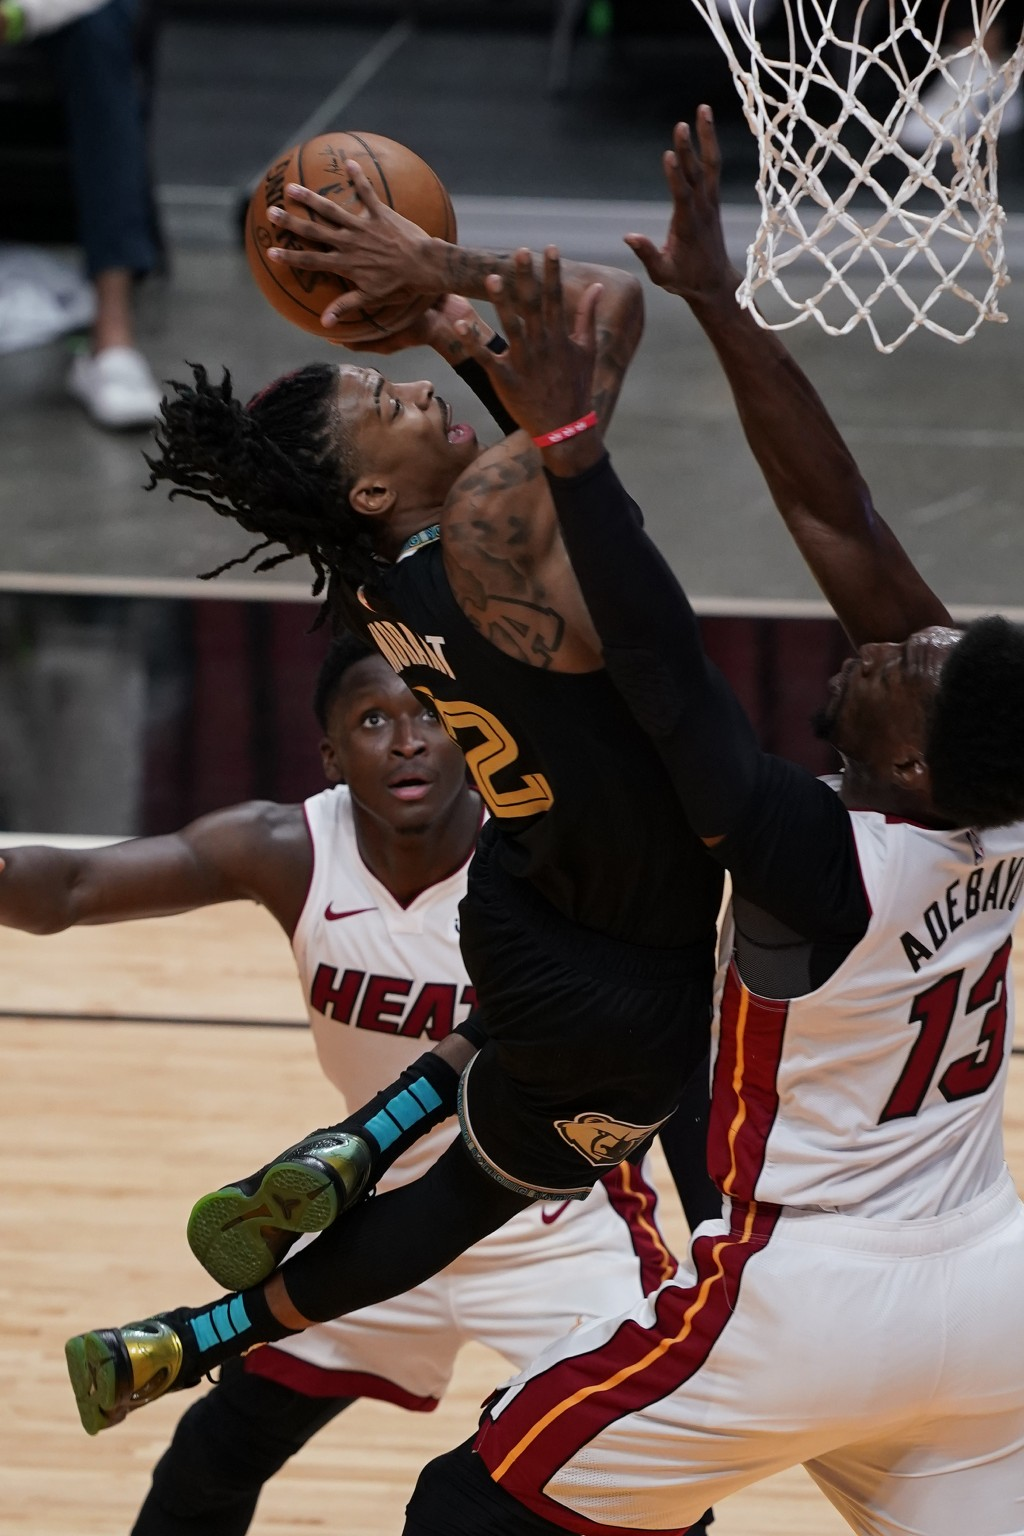 Memphis Grizzlies guard Ja Morant (12) drives to the basket as Miami Heat center Bam Adebayo (13) defends, during the second half of an NBA basketball...